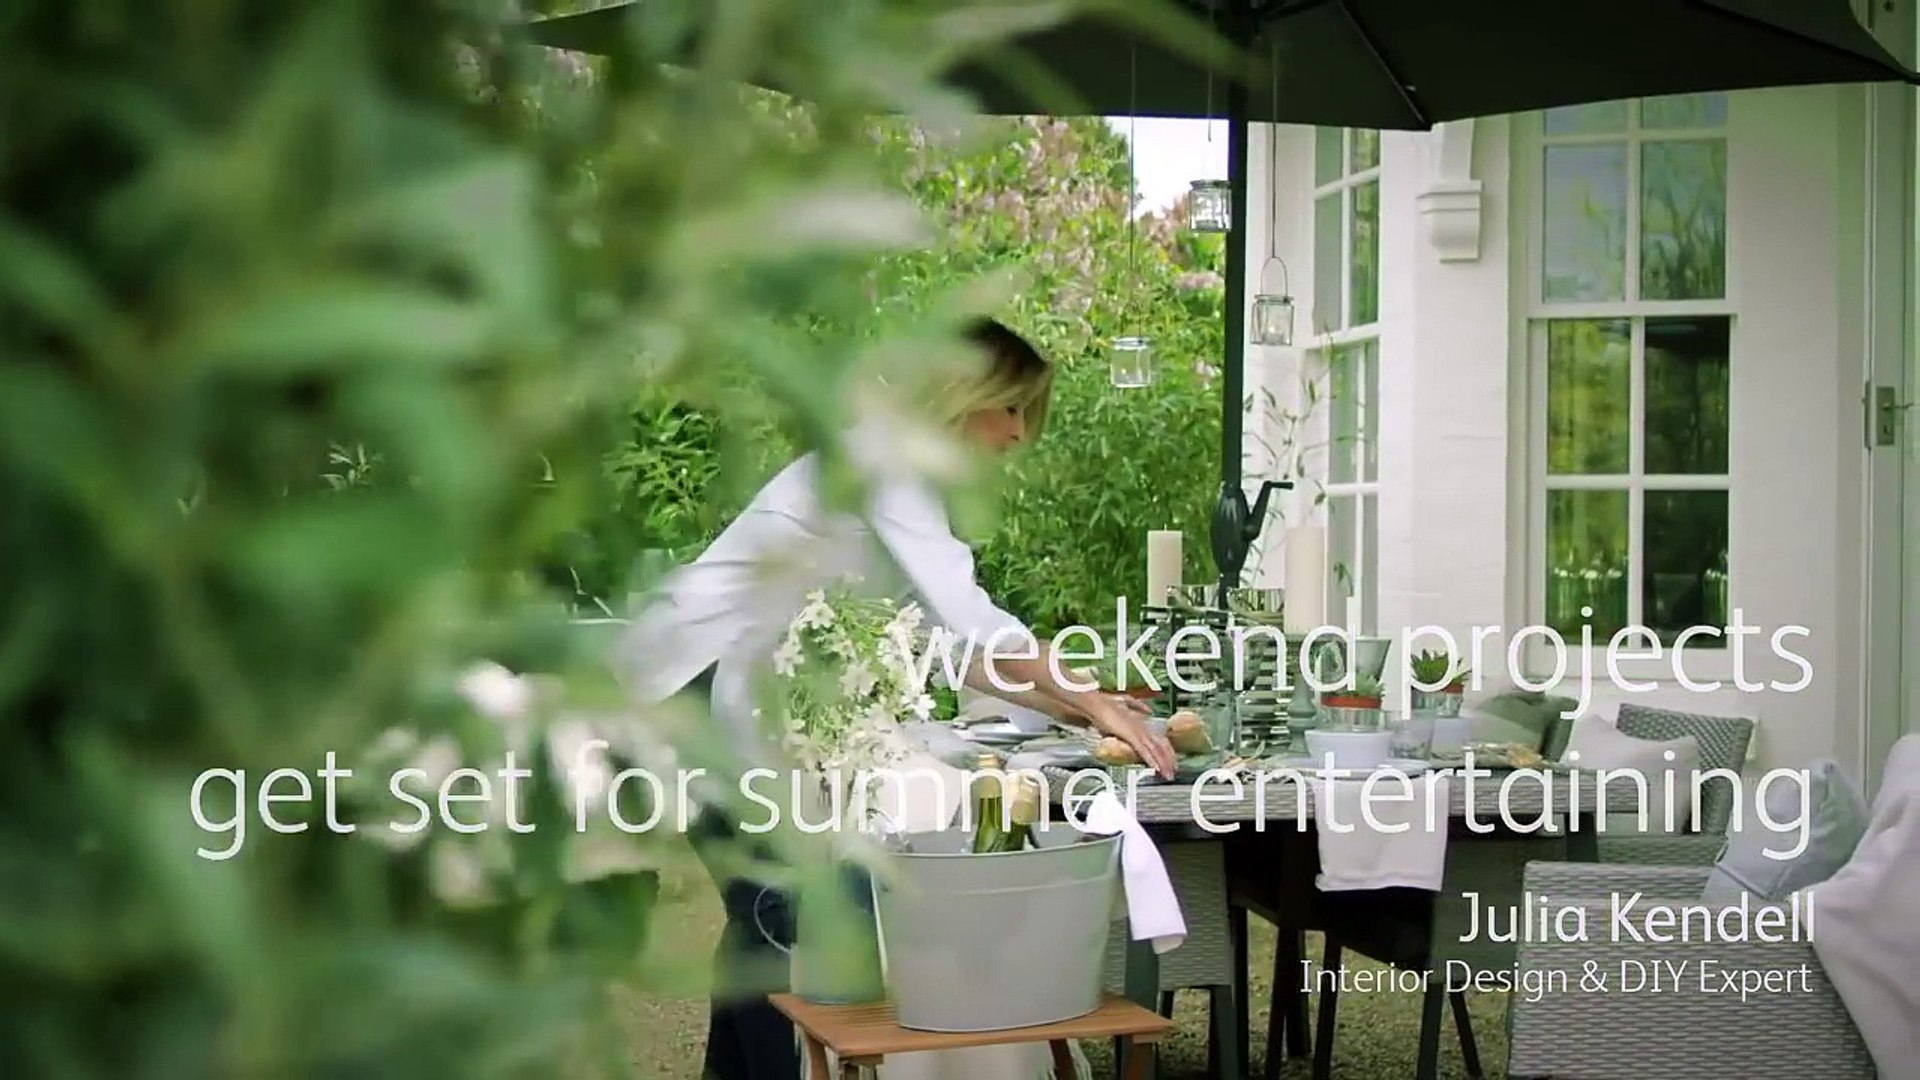 How to style garden furniture & accessories for a garden party - tips from Julia Kendell